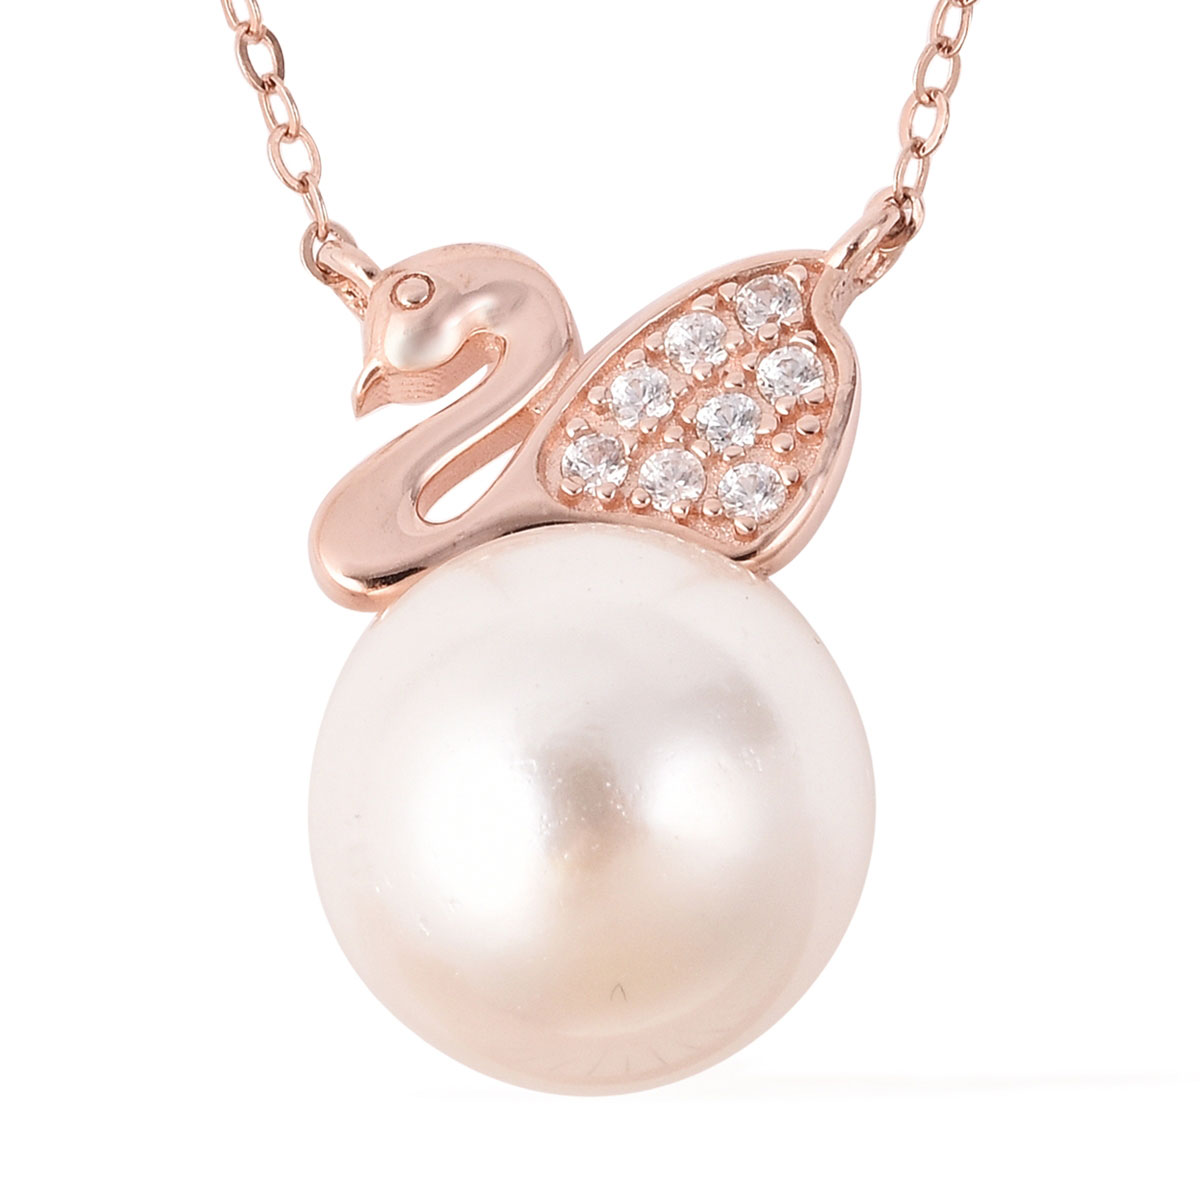 Jewels Obsession Swan Necklace Rhodium-plated 925 Silver Swan Pendant with 18 Necklace